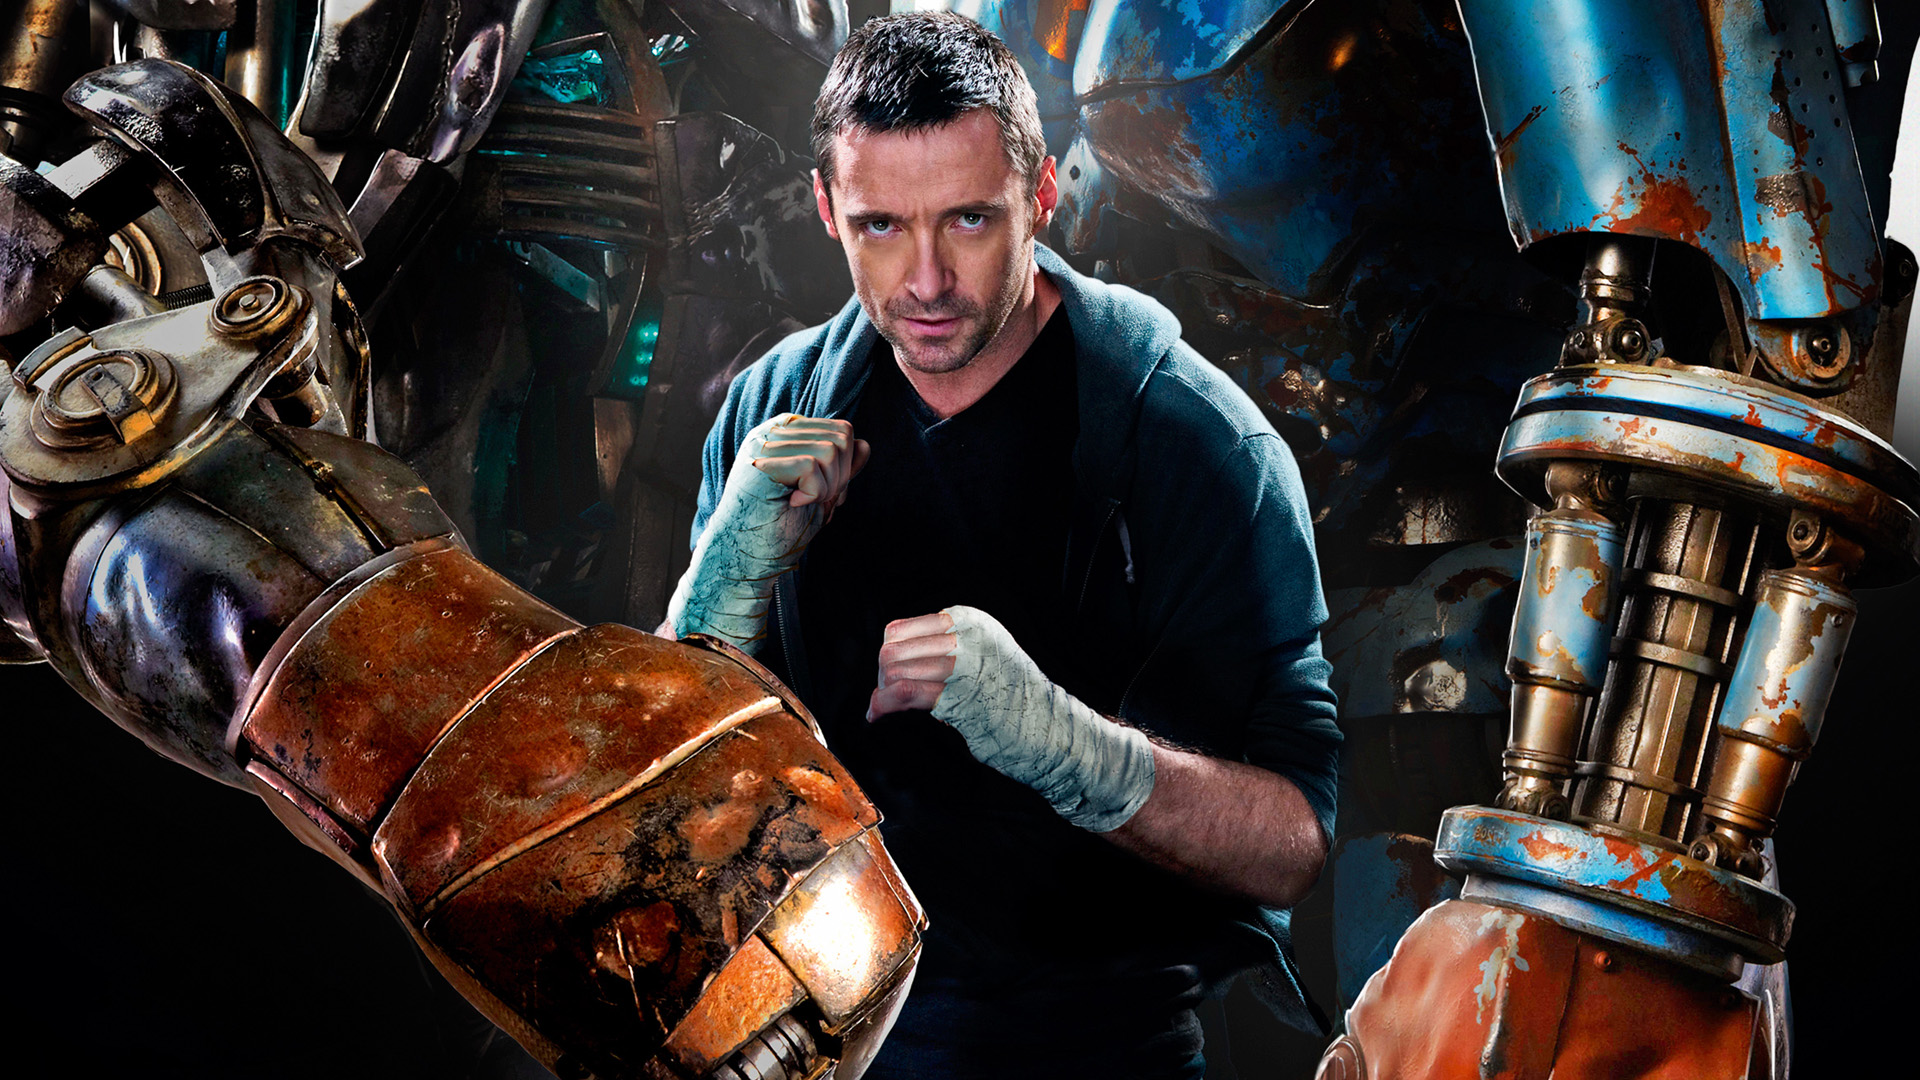 Real Steel Pictures 6885134 1920x1080